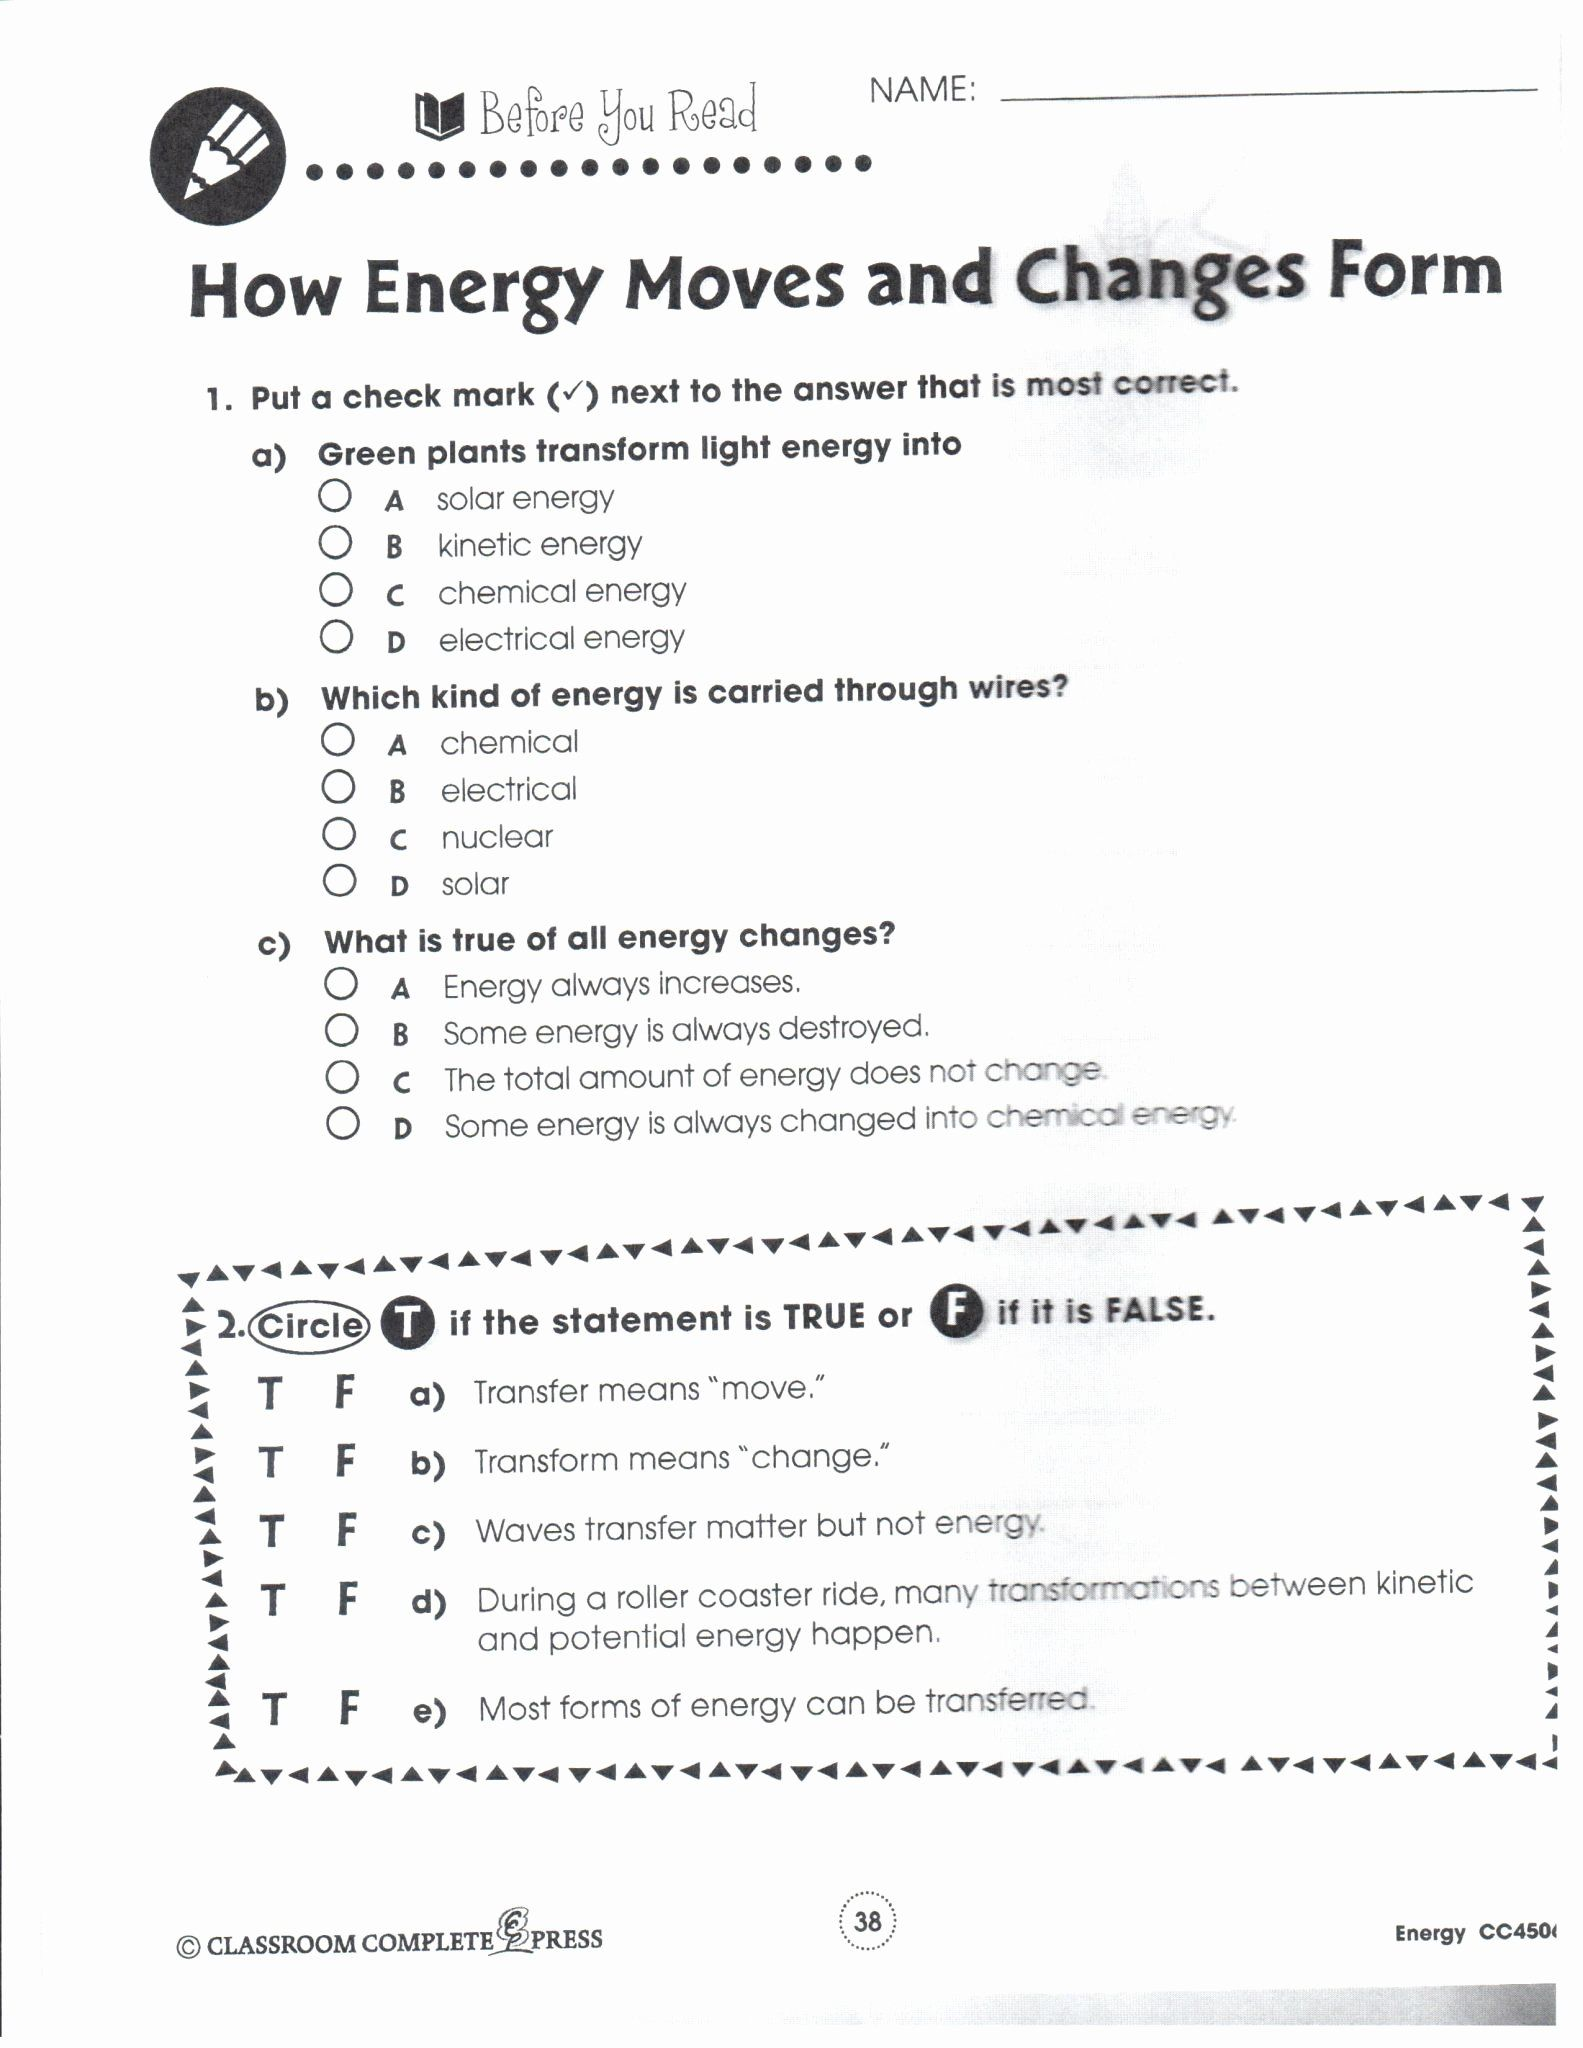 Genetics Worksheet Middle School Fresh Making It As A Middle School Teacher Going Green Chessmuse In 2020 Chemistry Worksheets Potential Energy Work Energy And Power